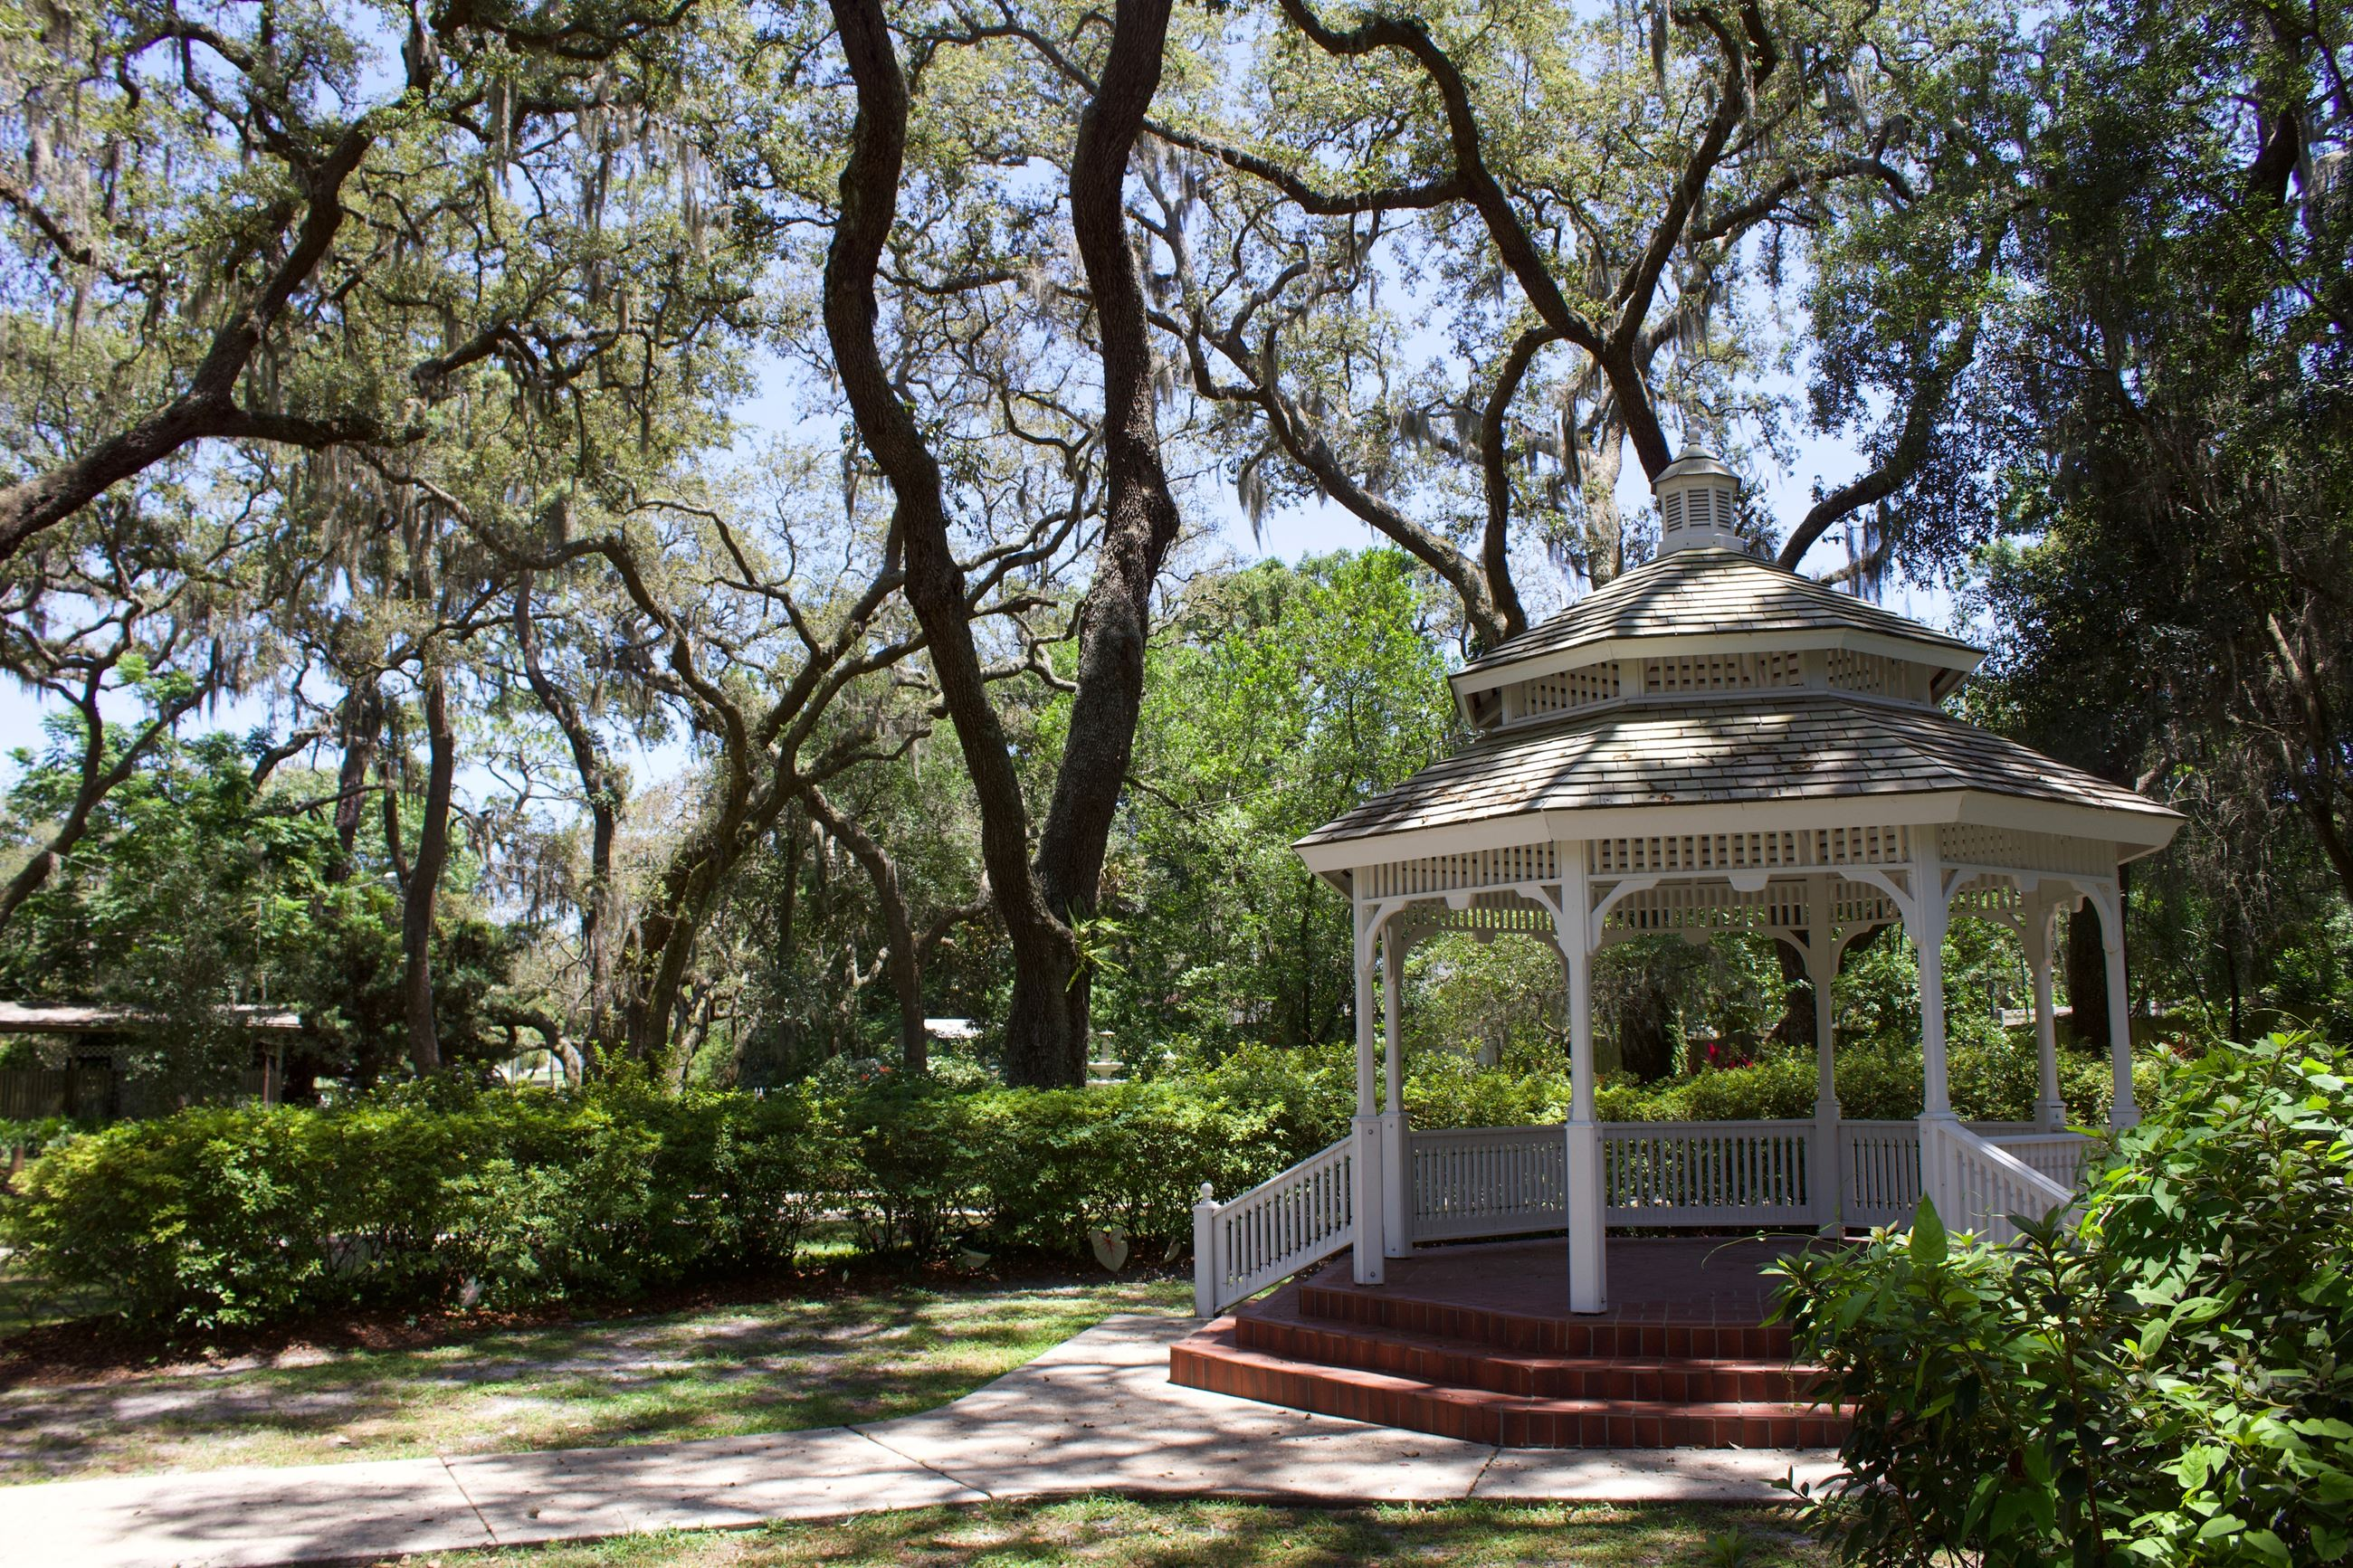 woodmont park with gazebo